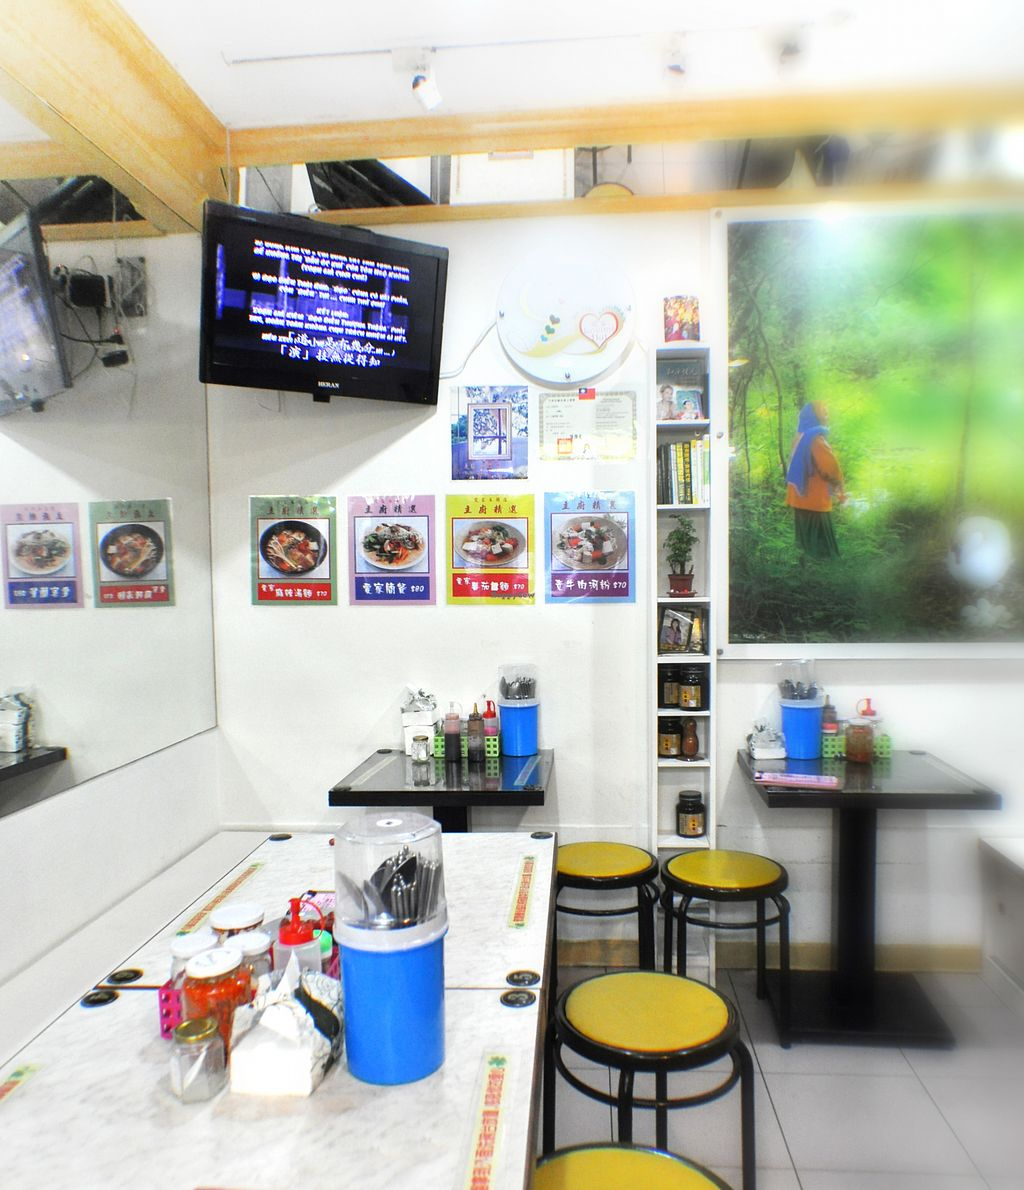 """Photo of Loving Hut - Dunhua North Rd  by <a href=""""/members/profile/TacoChang"""">TacoChang</a> <br/>Loving Hut Dunhua Branch dining area <br/> November 8, 2017  - <a href='/contact/abuse/image/48040/323226'>Report</a>"""